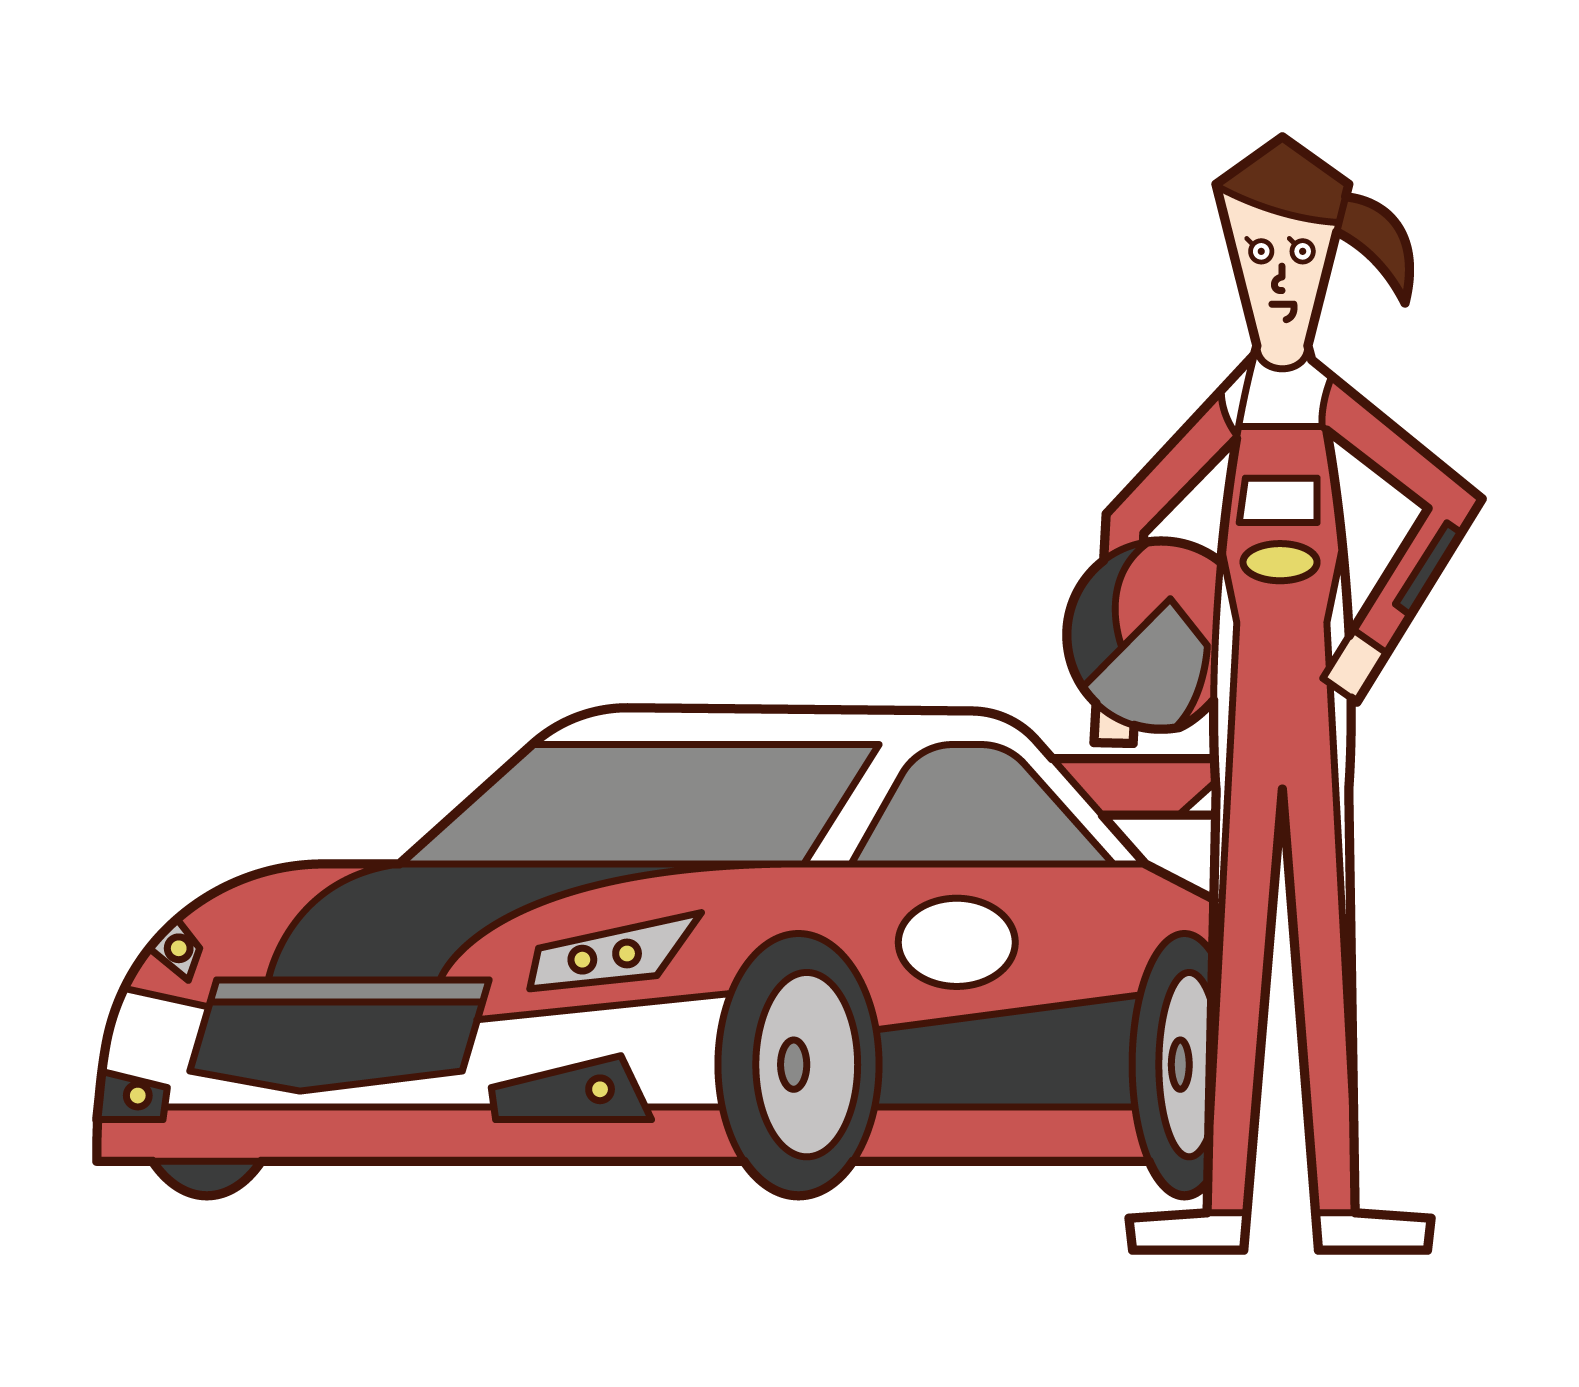 Illustration of Car Racer Motor Racer (woman)